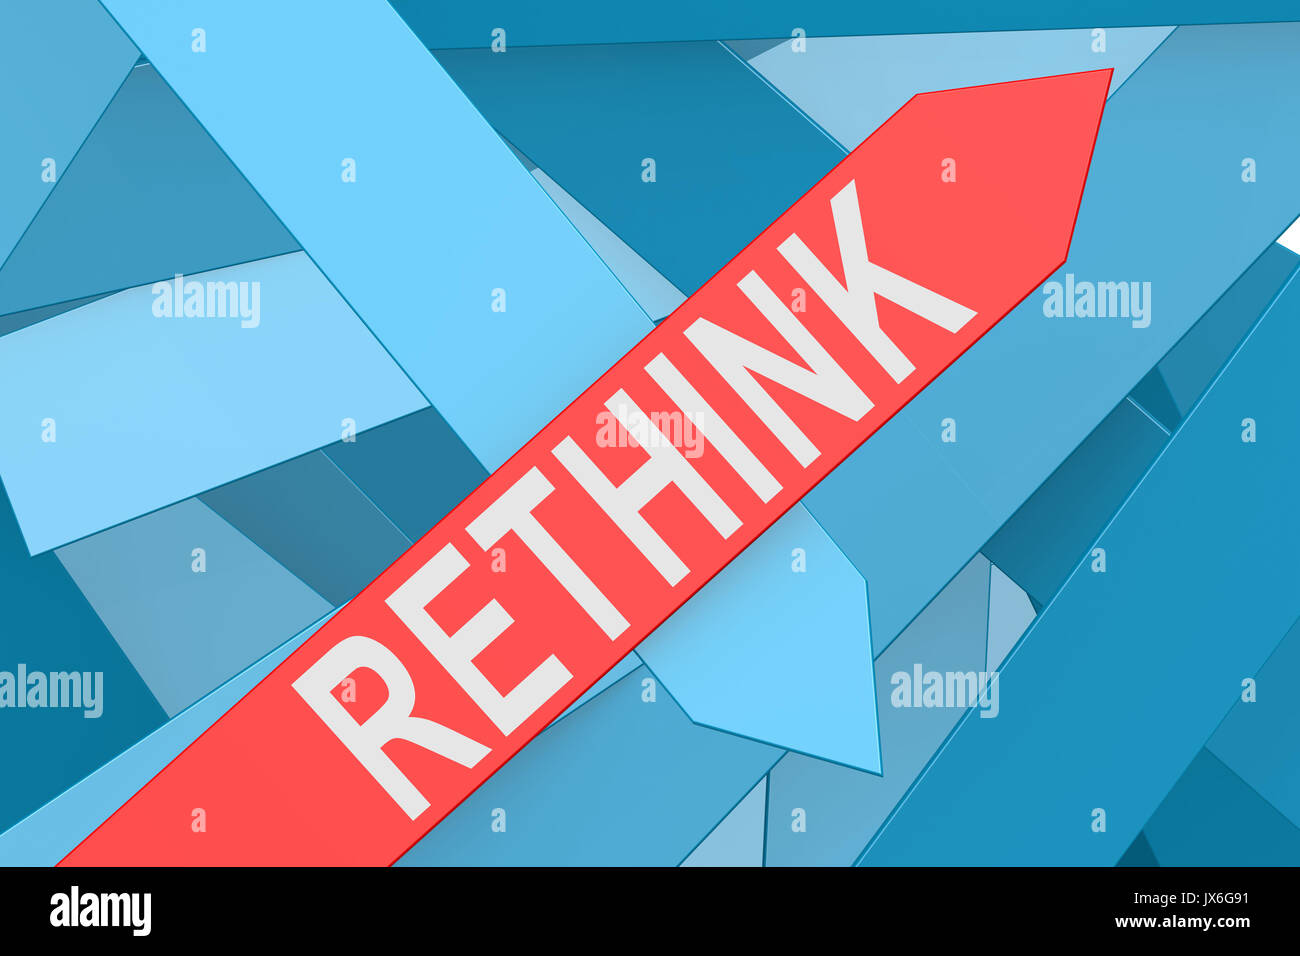 Rethink word on red arrow pointing upward, 3d rendering - Stock Image